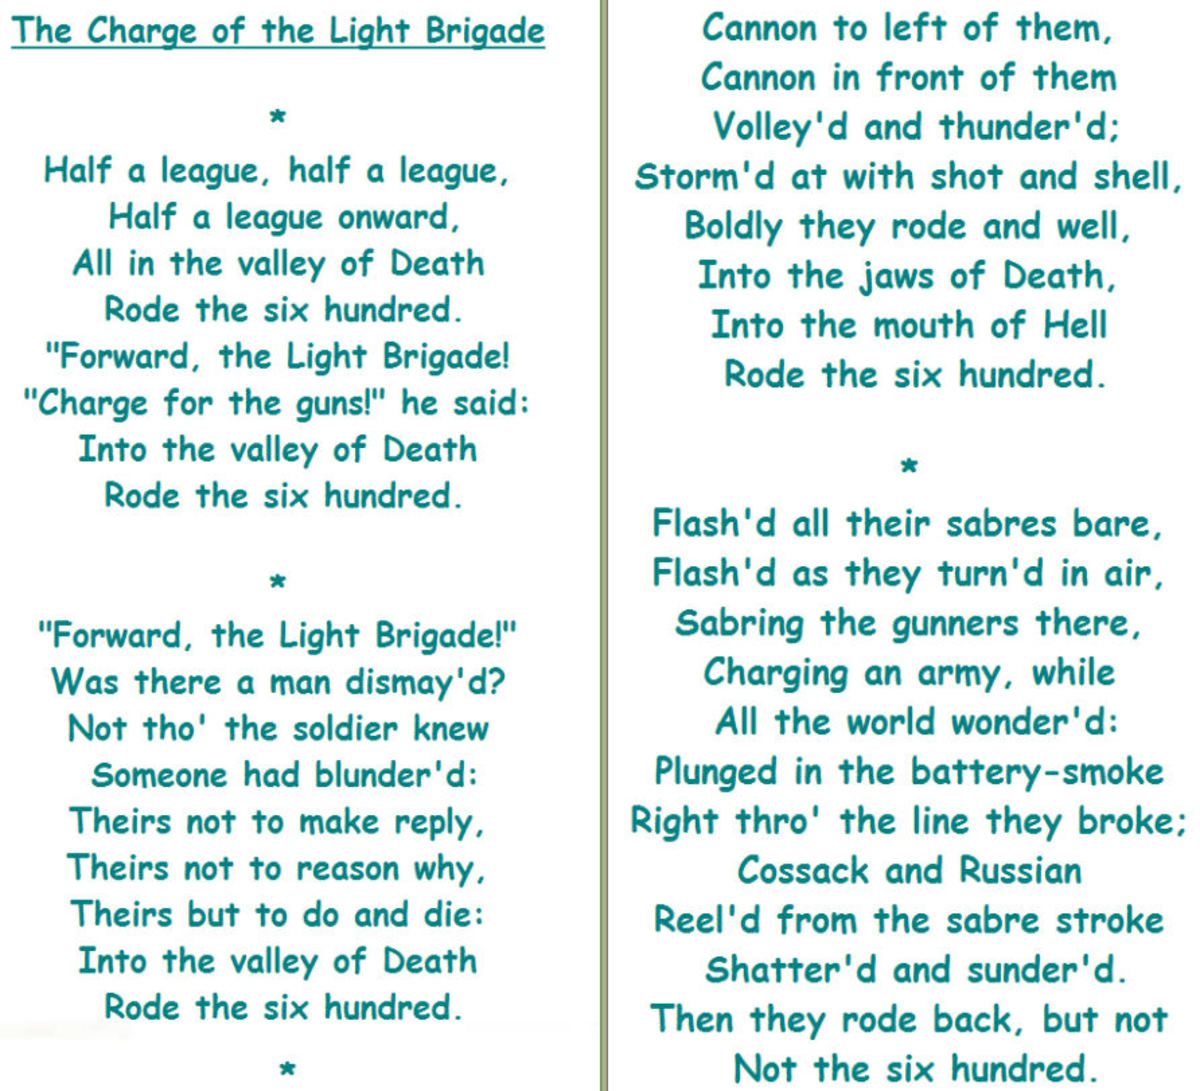 tennyson-and-the-charge-of-the-light-brigade